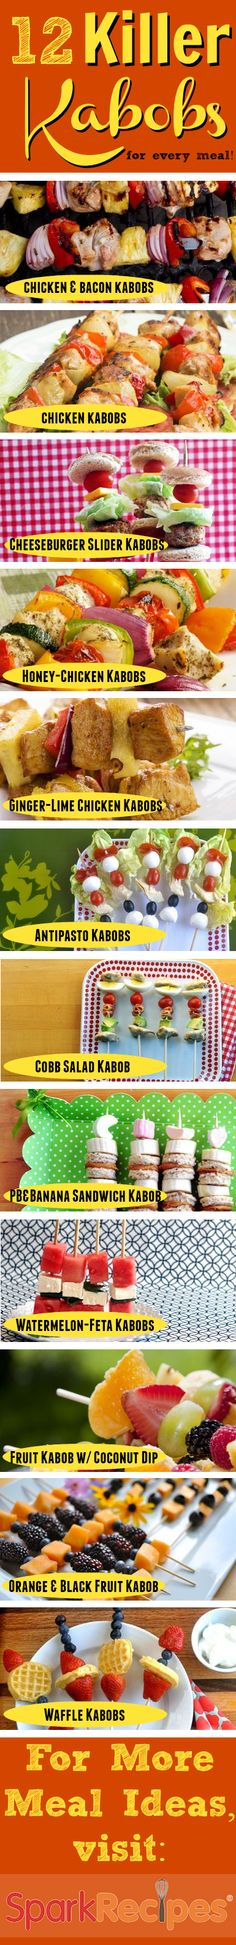 12 Healthy Dishes Served on a Stick. Get sticky with it with these 12 killer kabob recipes! | via @SparkPeople